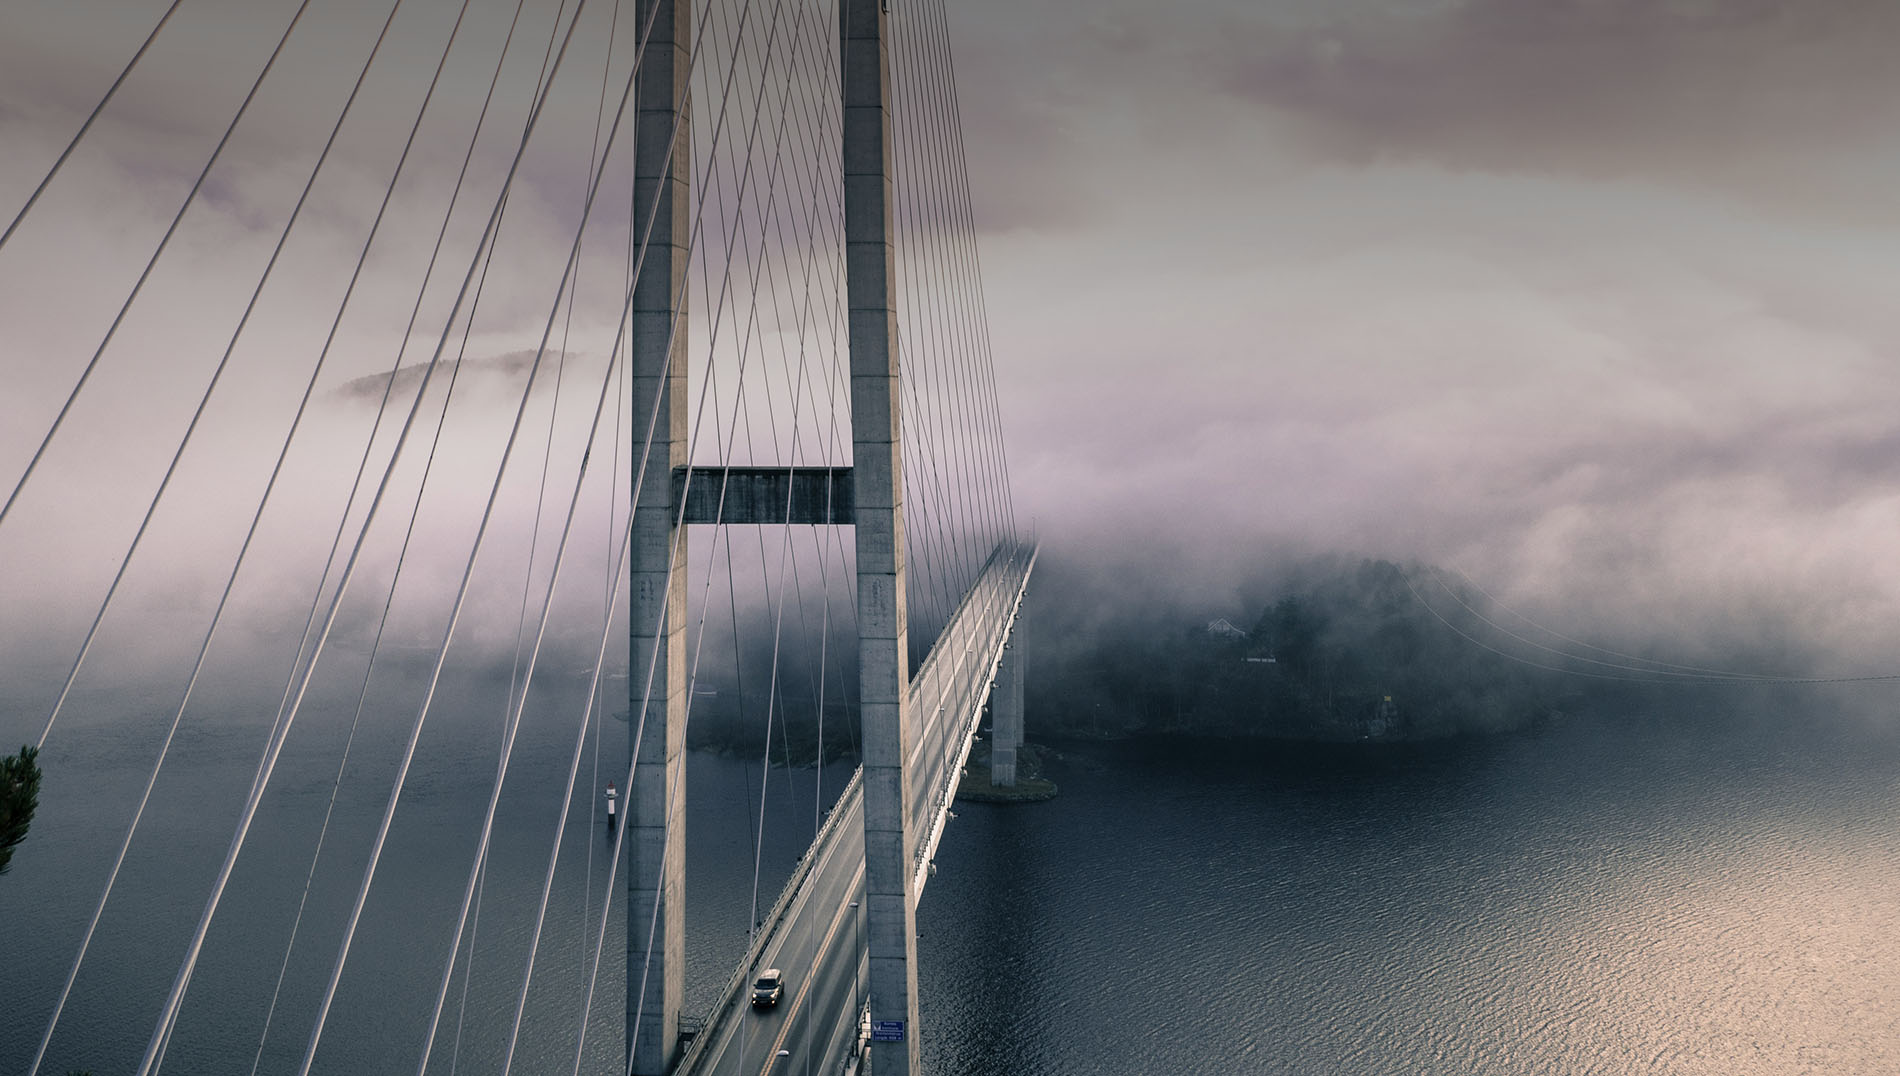 Suspension bridge partly obscured by a thick fog.